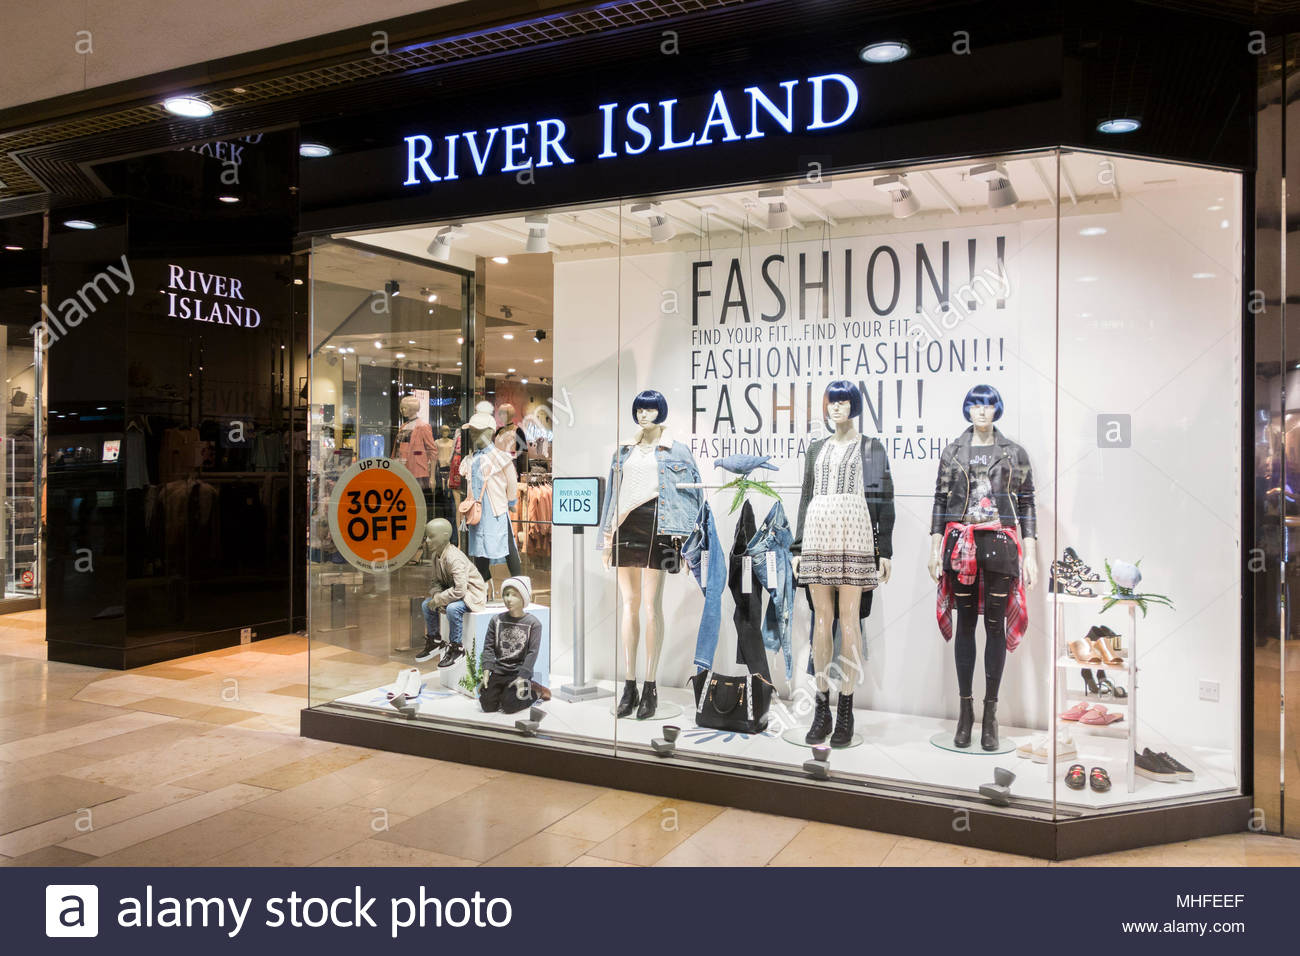 River Island retail store in Queensgate Shopping Centre, Peterborough, UK Stock Photo